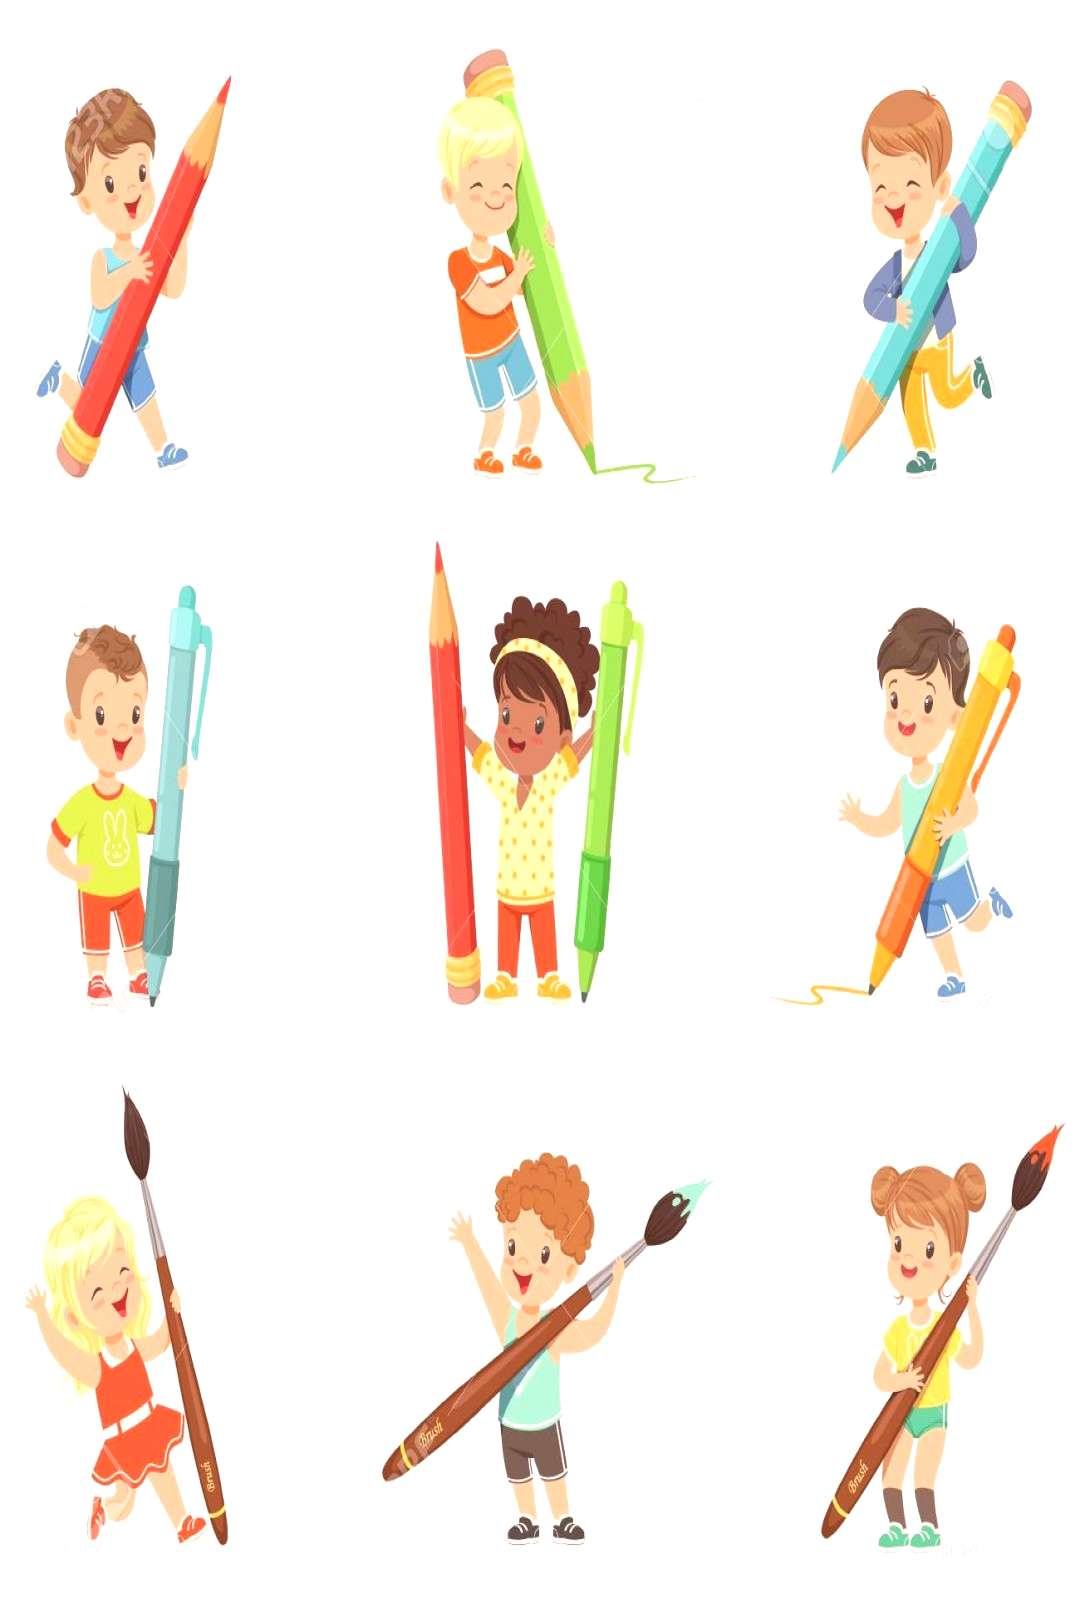 Smiling young boys and girls holding big pencils, pens and paintbrushes, set for label design. Cart